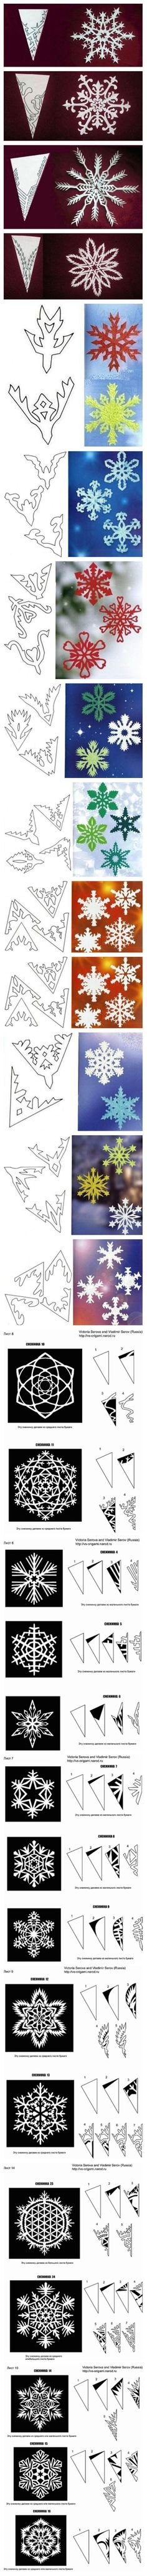 Time to cut out snowflakes!